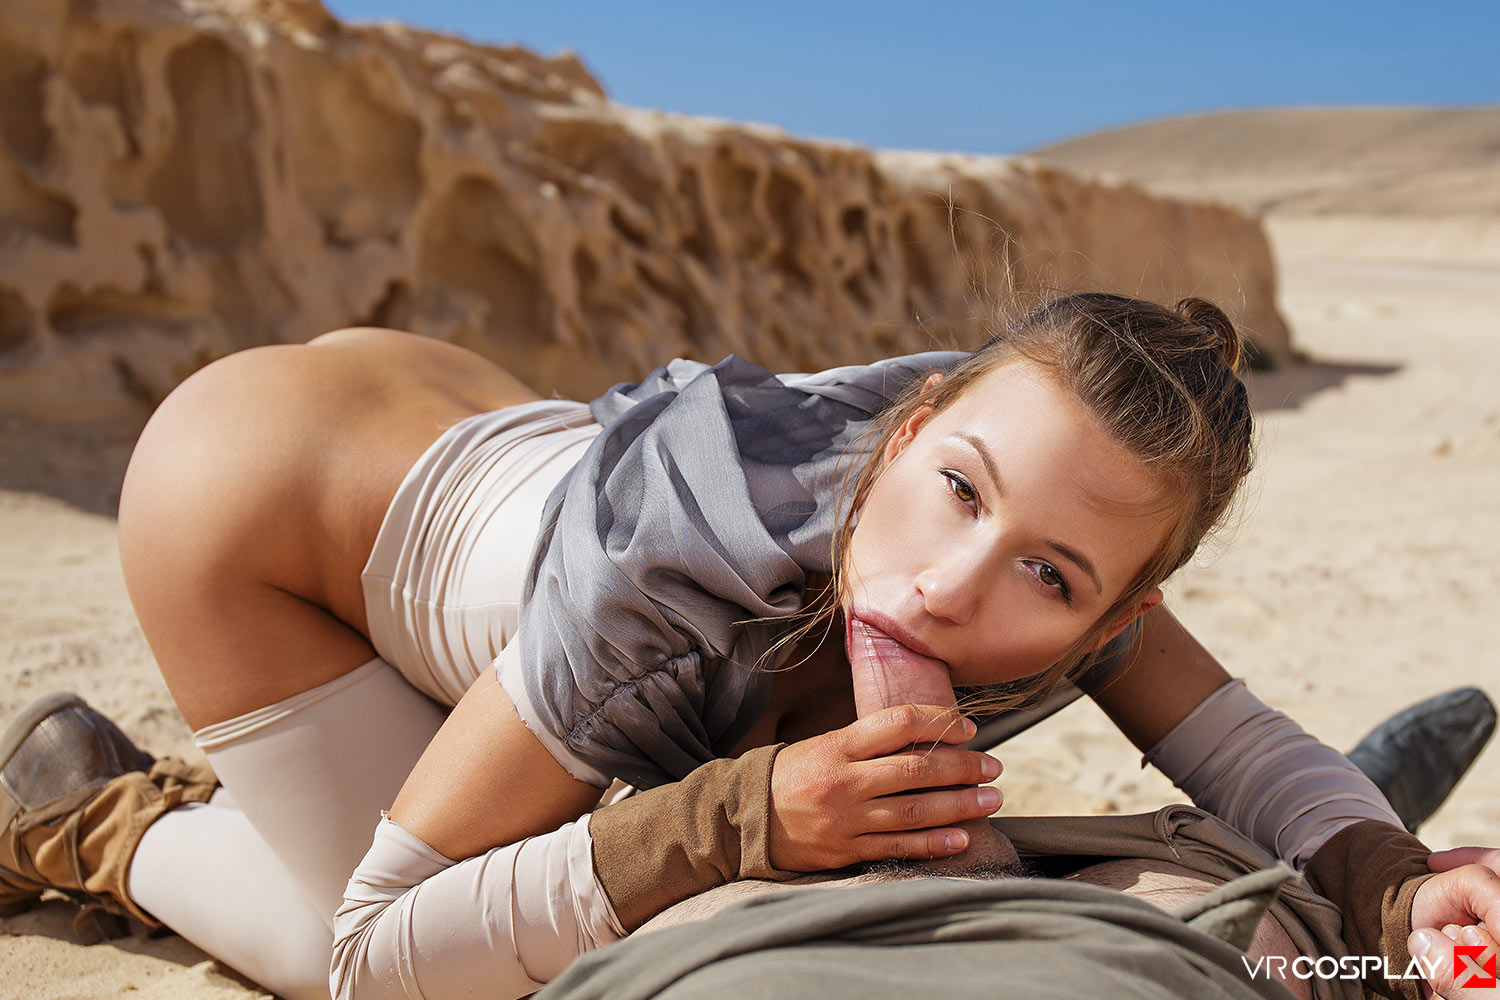 Absolutely free lesbian porn videos